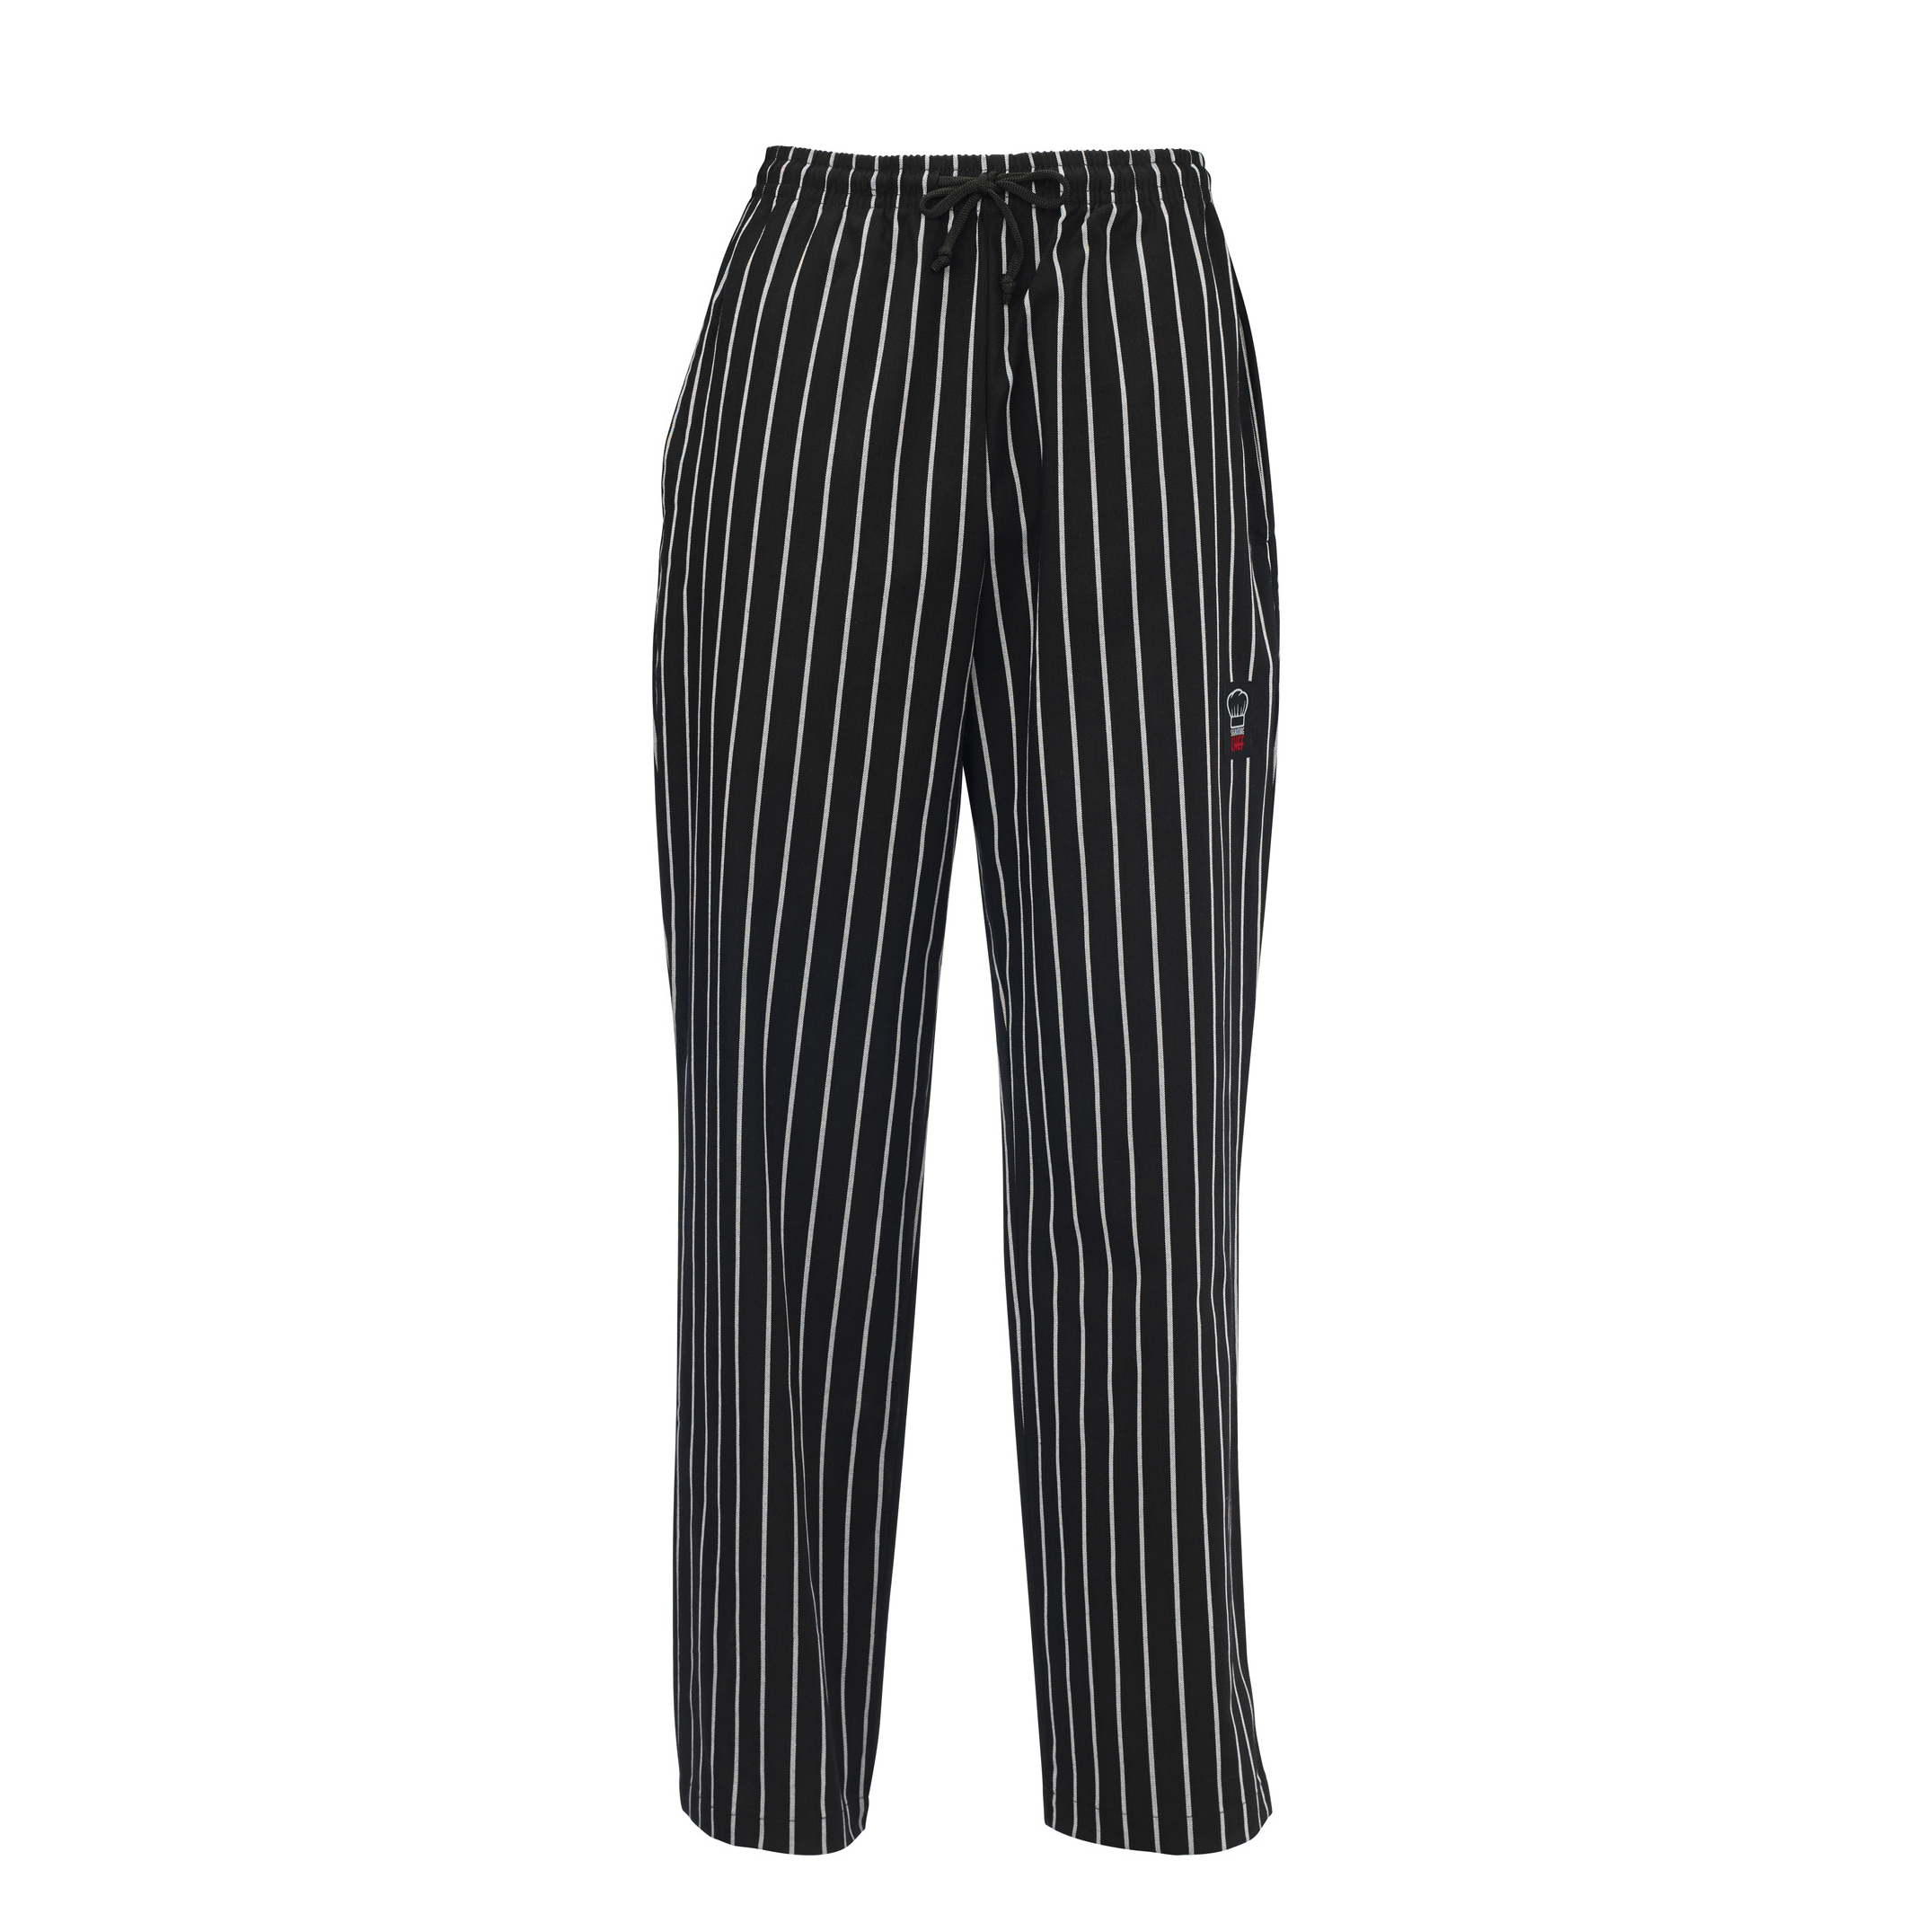 Winco UNF-3CS chef's pants